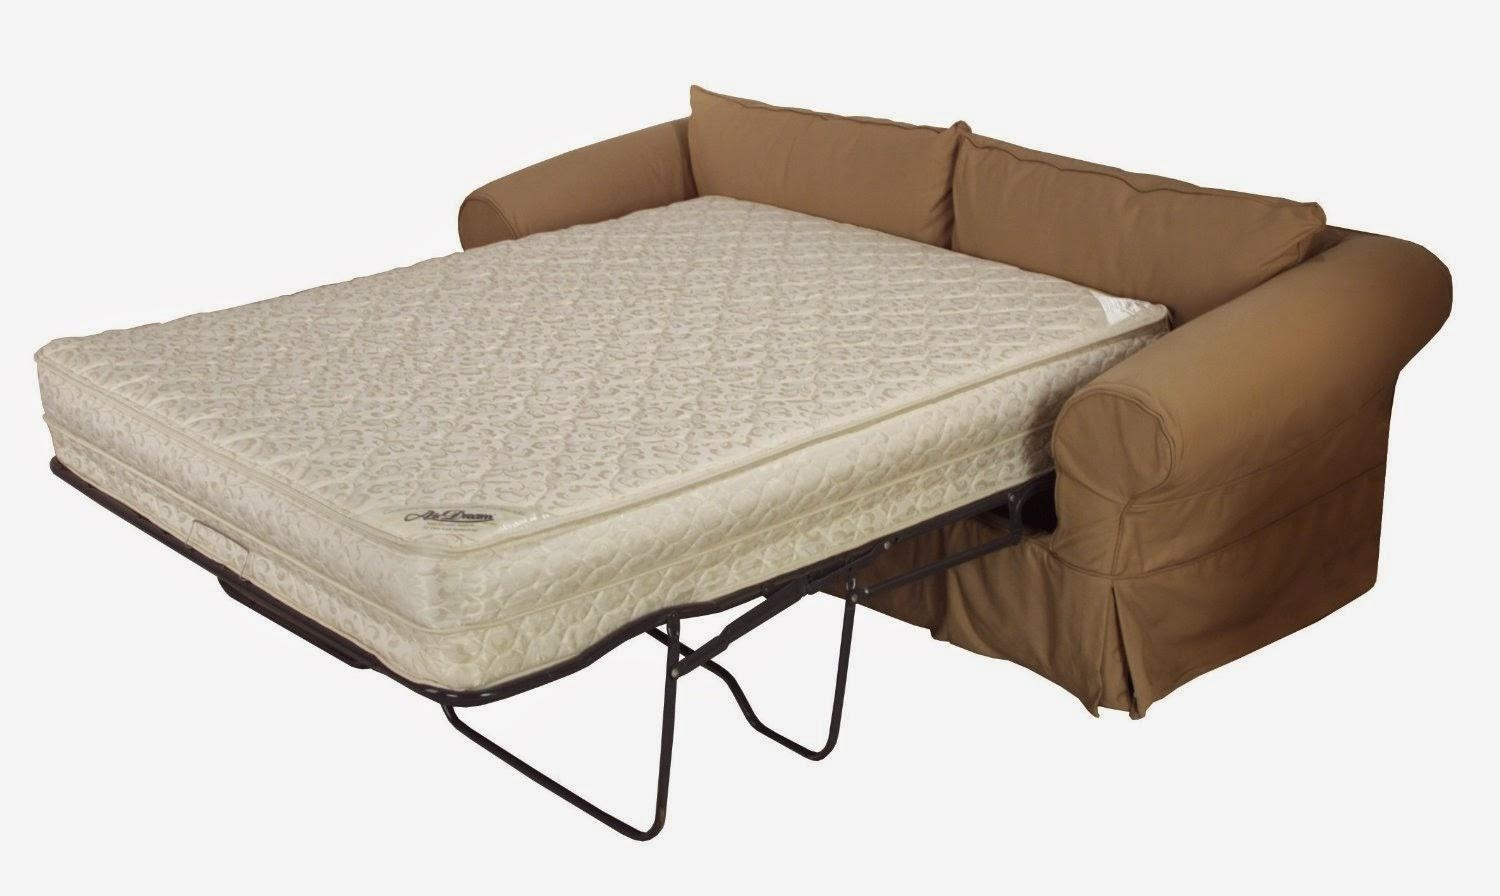 Queen Sofa Bed Dimensions pertaining to Sleep Number Sofa Beds